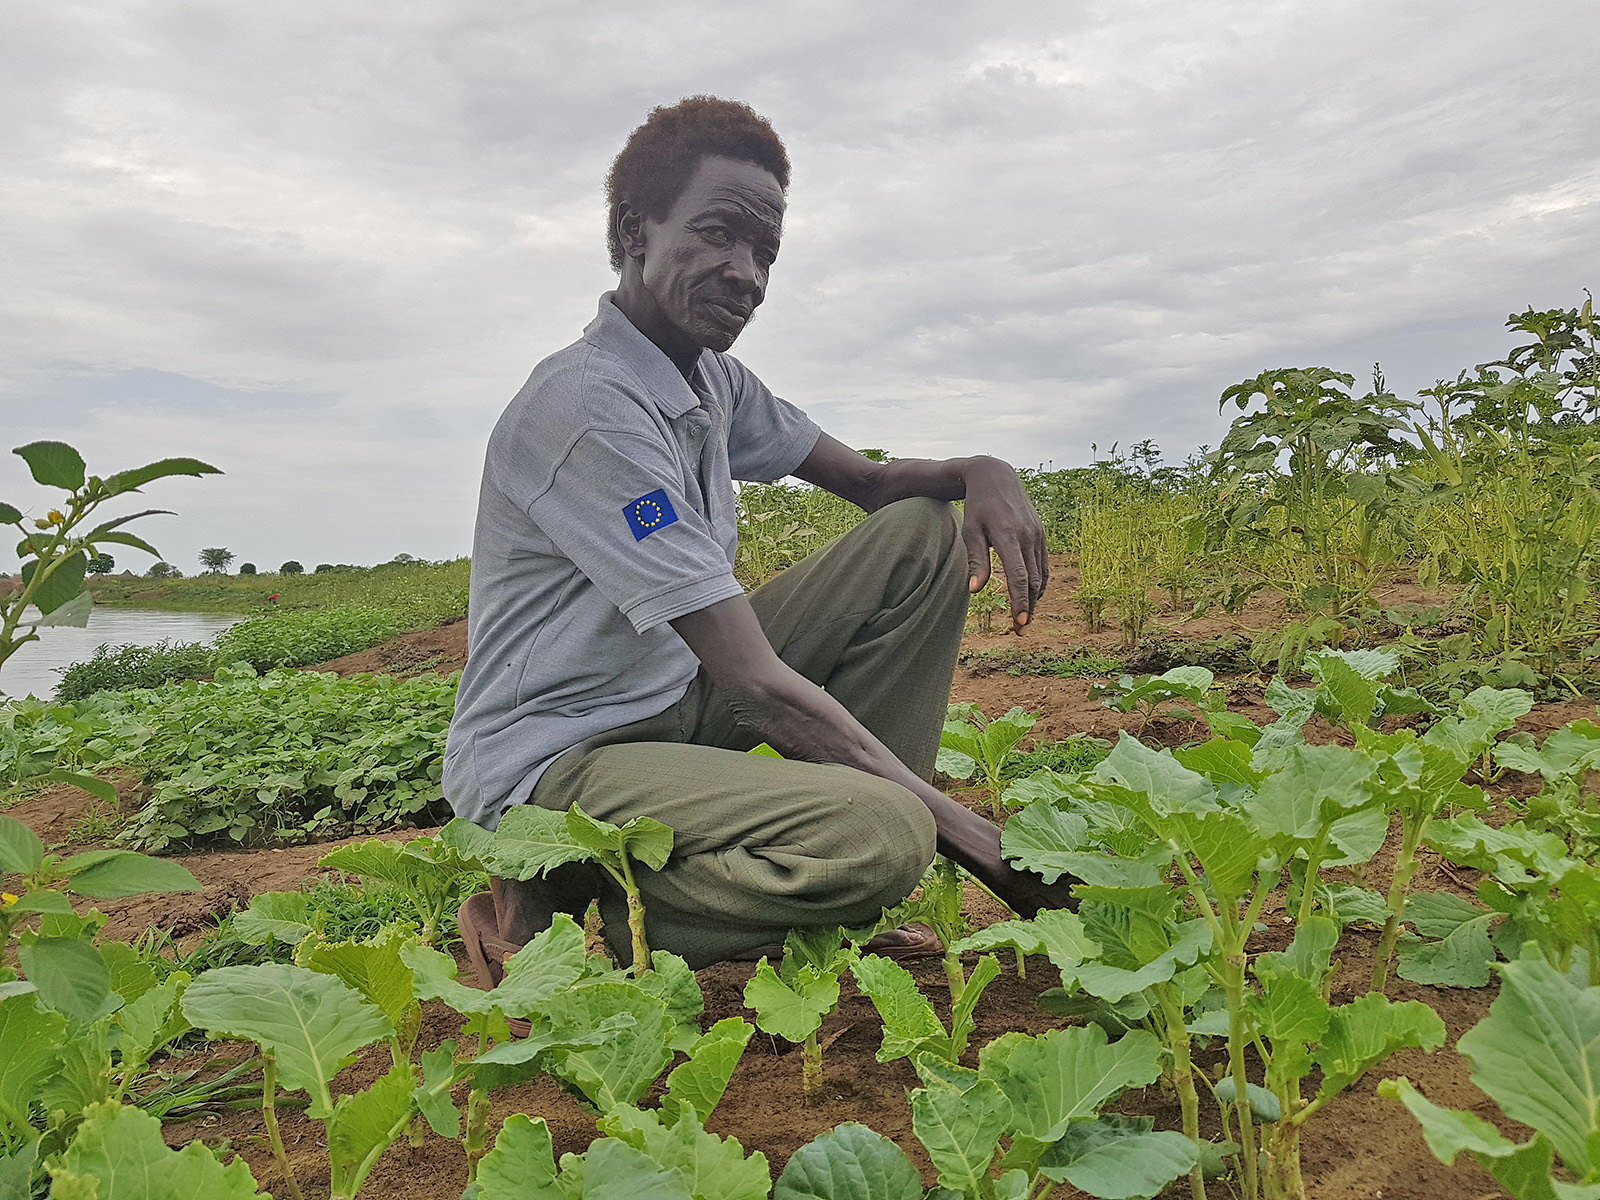 Strengthening the resilience of communities in South Sudan's cross-border areas